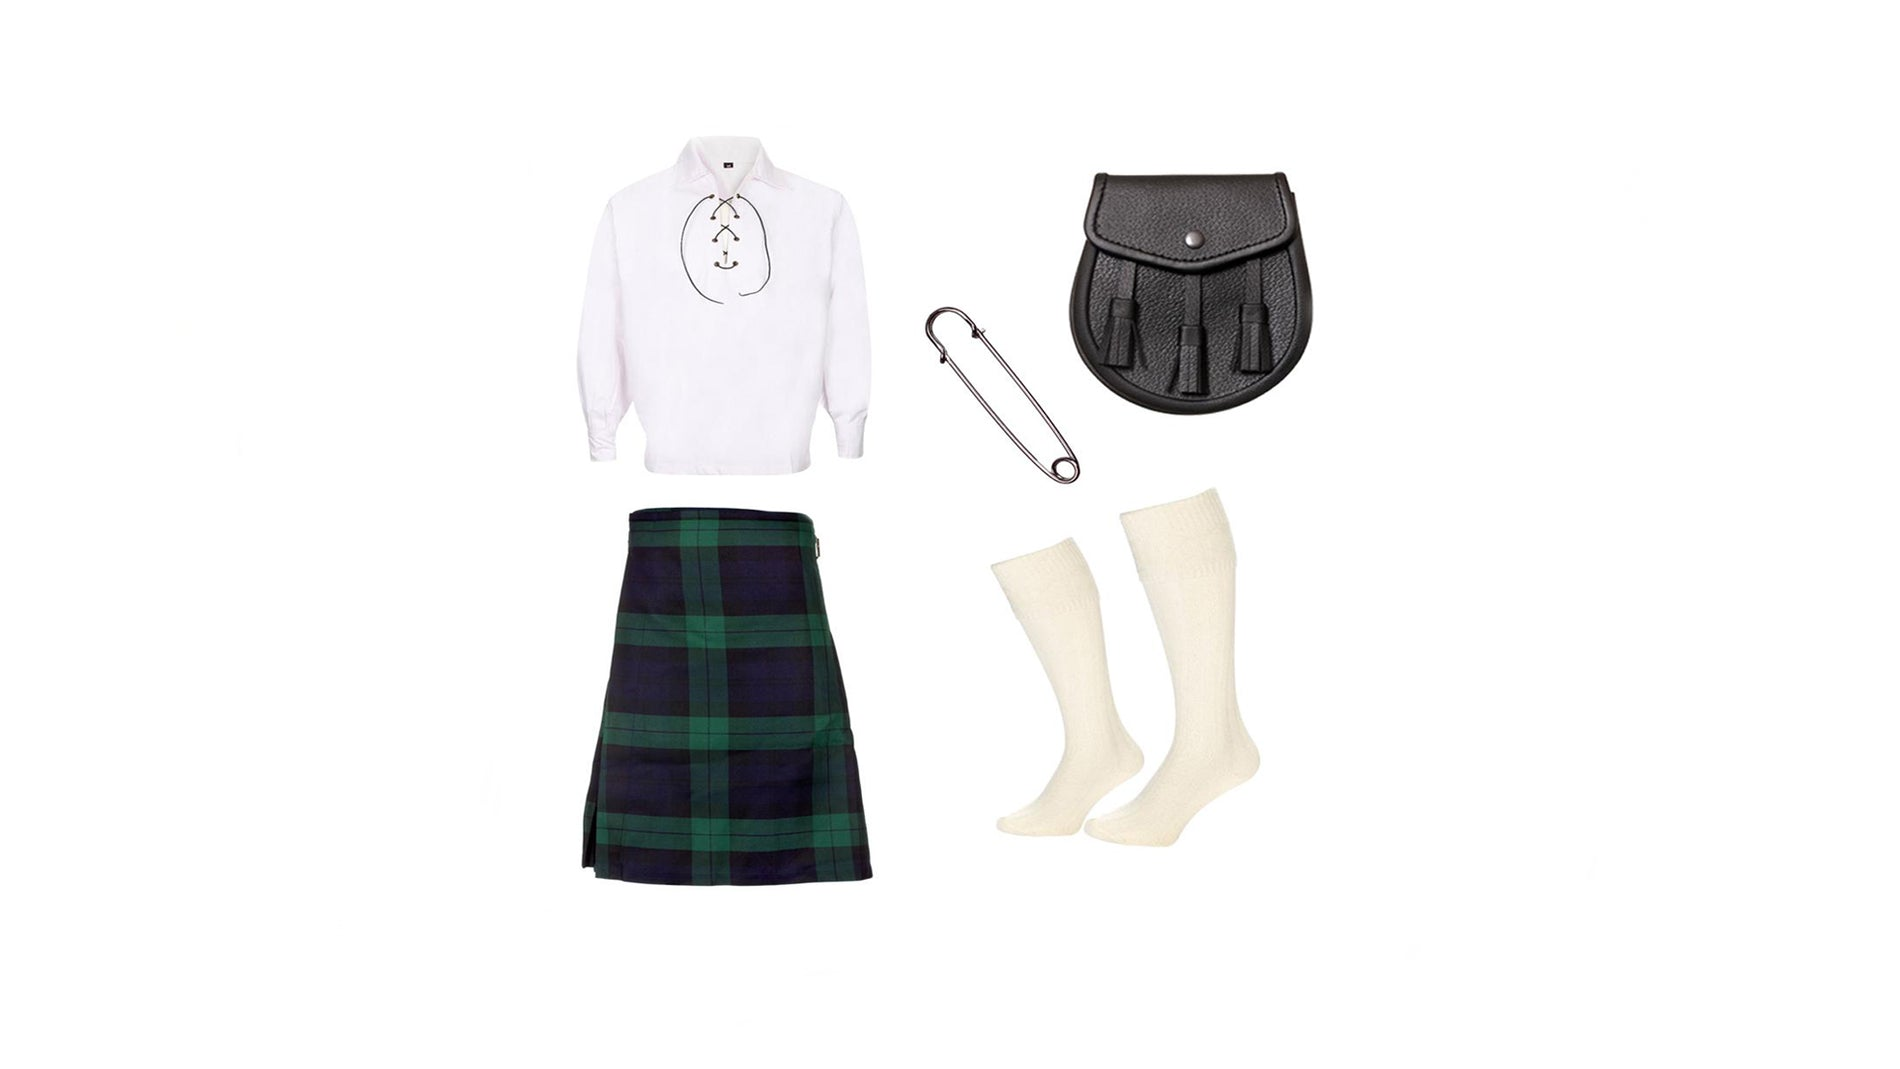 A quick guide to Kilt Outfits!